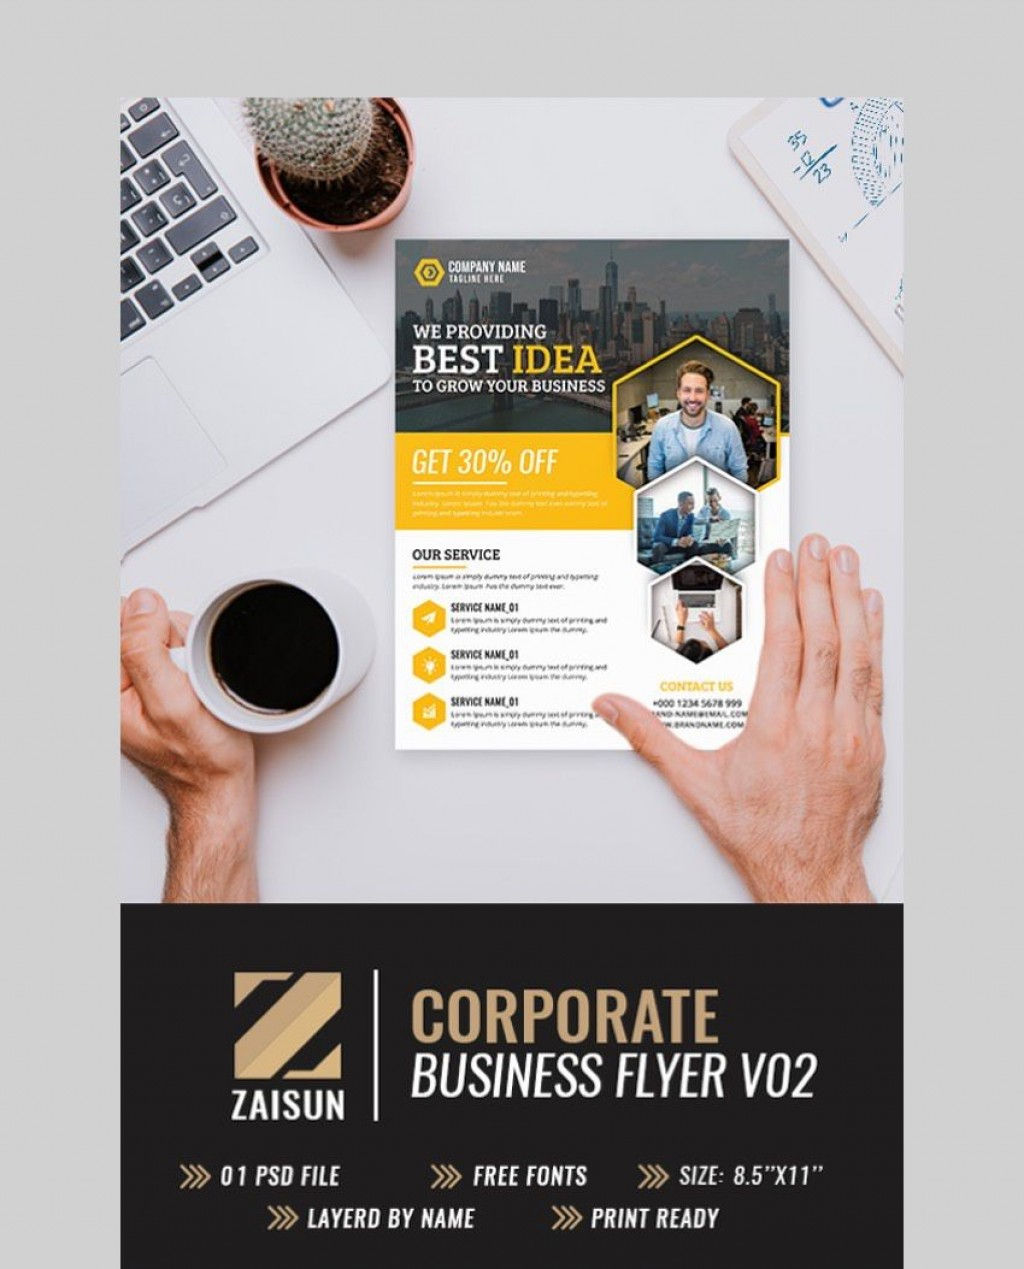 004 Top Busines Flyer Template Free Download Highest Quality Large